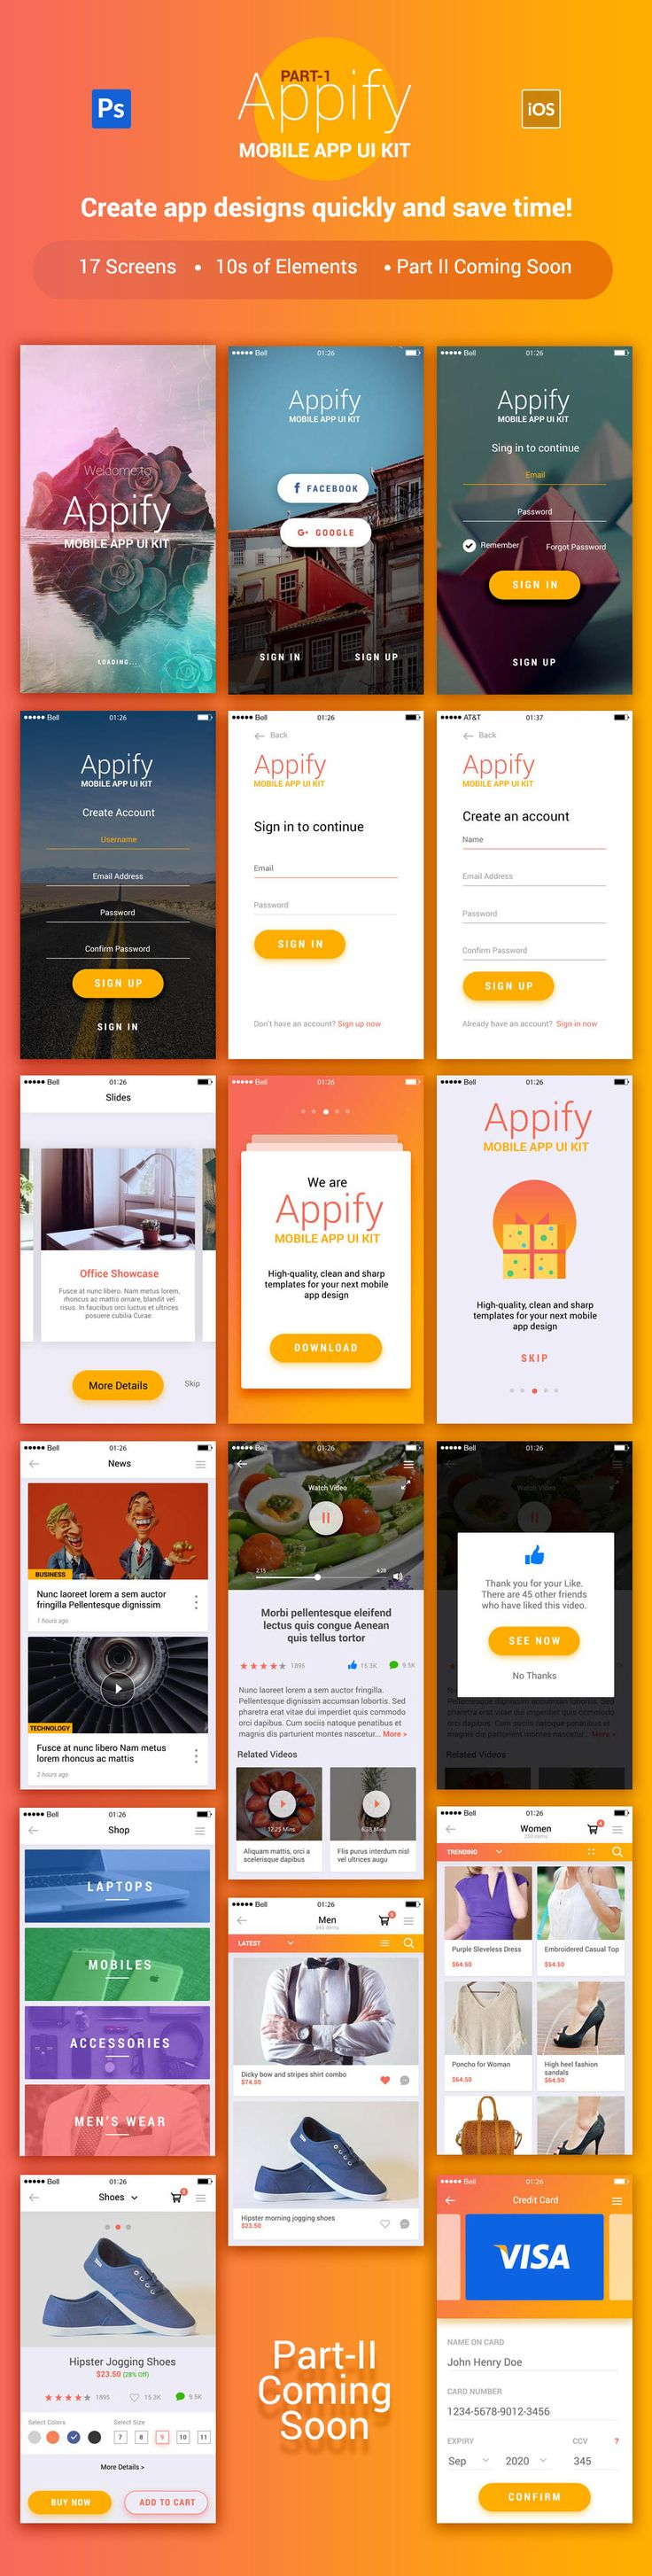 25 unique app ui ideas on pinterest mobile app ui ui design today i introduce you appify free mobile app ui kit it is a new mobile app ui kit for creating beautiful mobile apps perfect for ecommerce ccuart Gallery